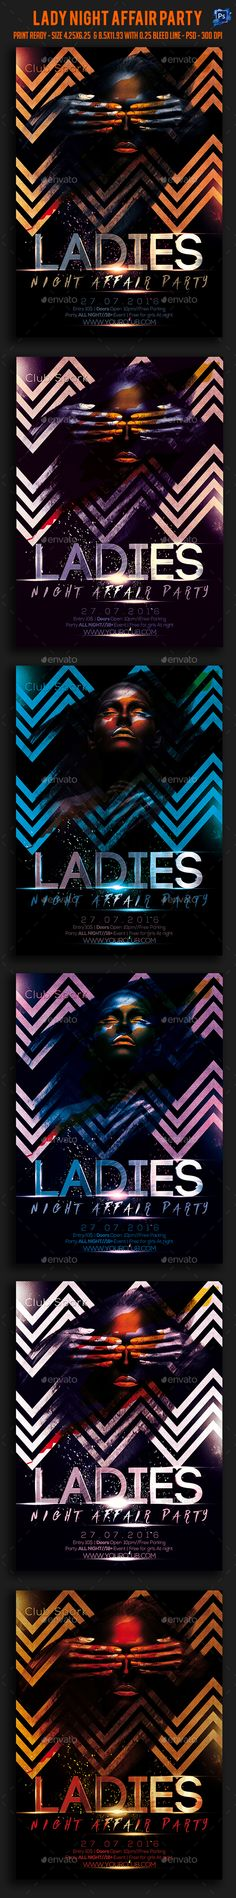 Ladies Night Affair Party Flyer Template PSD. Download here: https://graphicriver.net/item/ladies-night-affair-party-flyer-/17415666?ref=ksioks